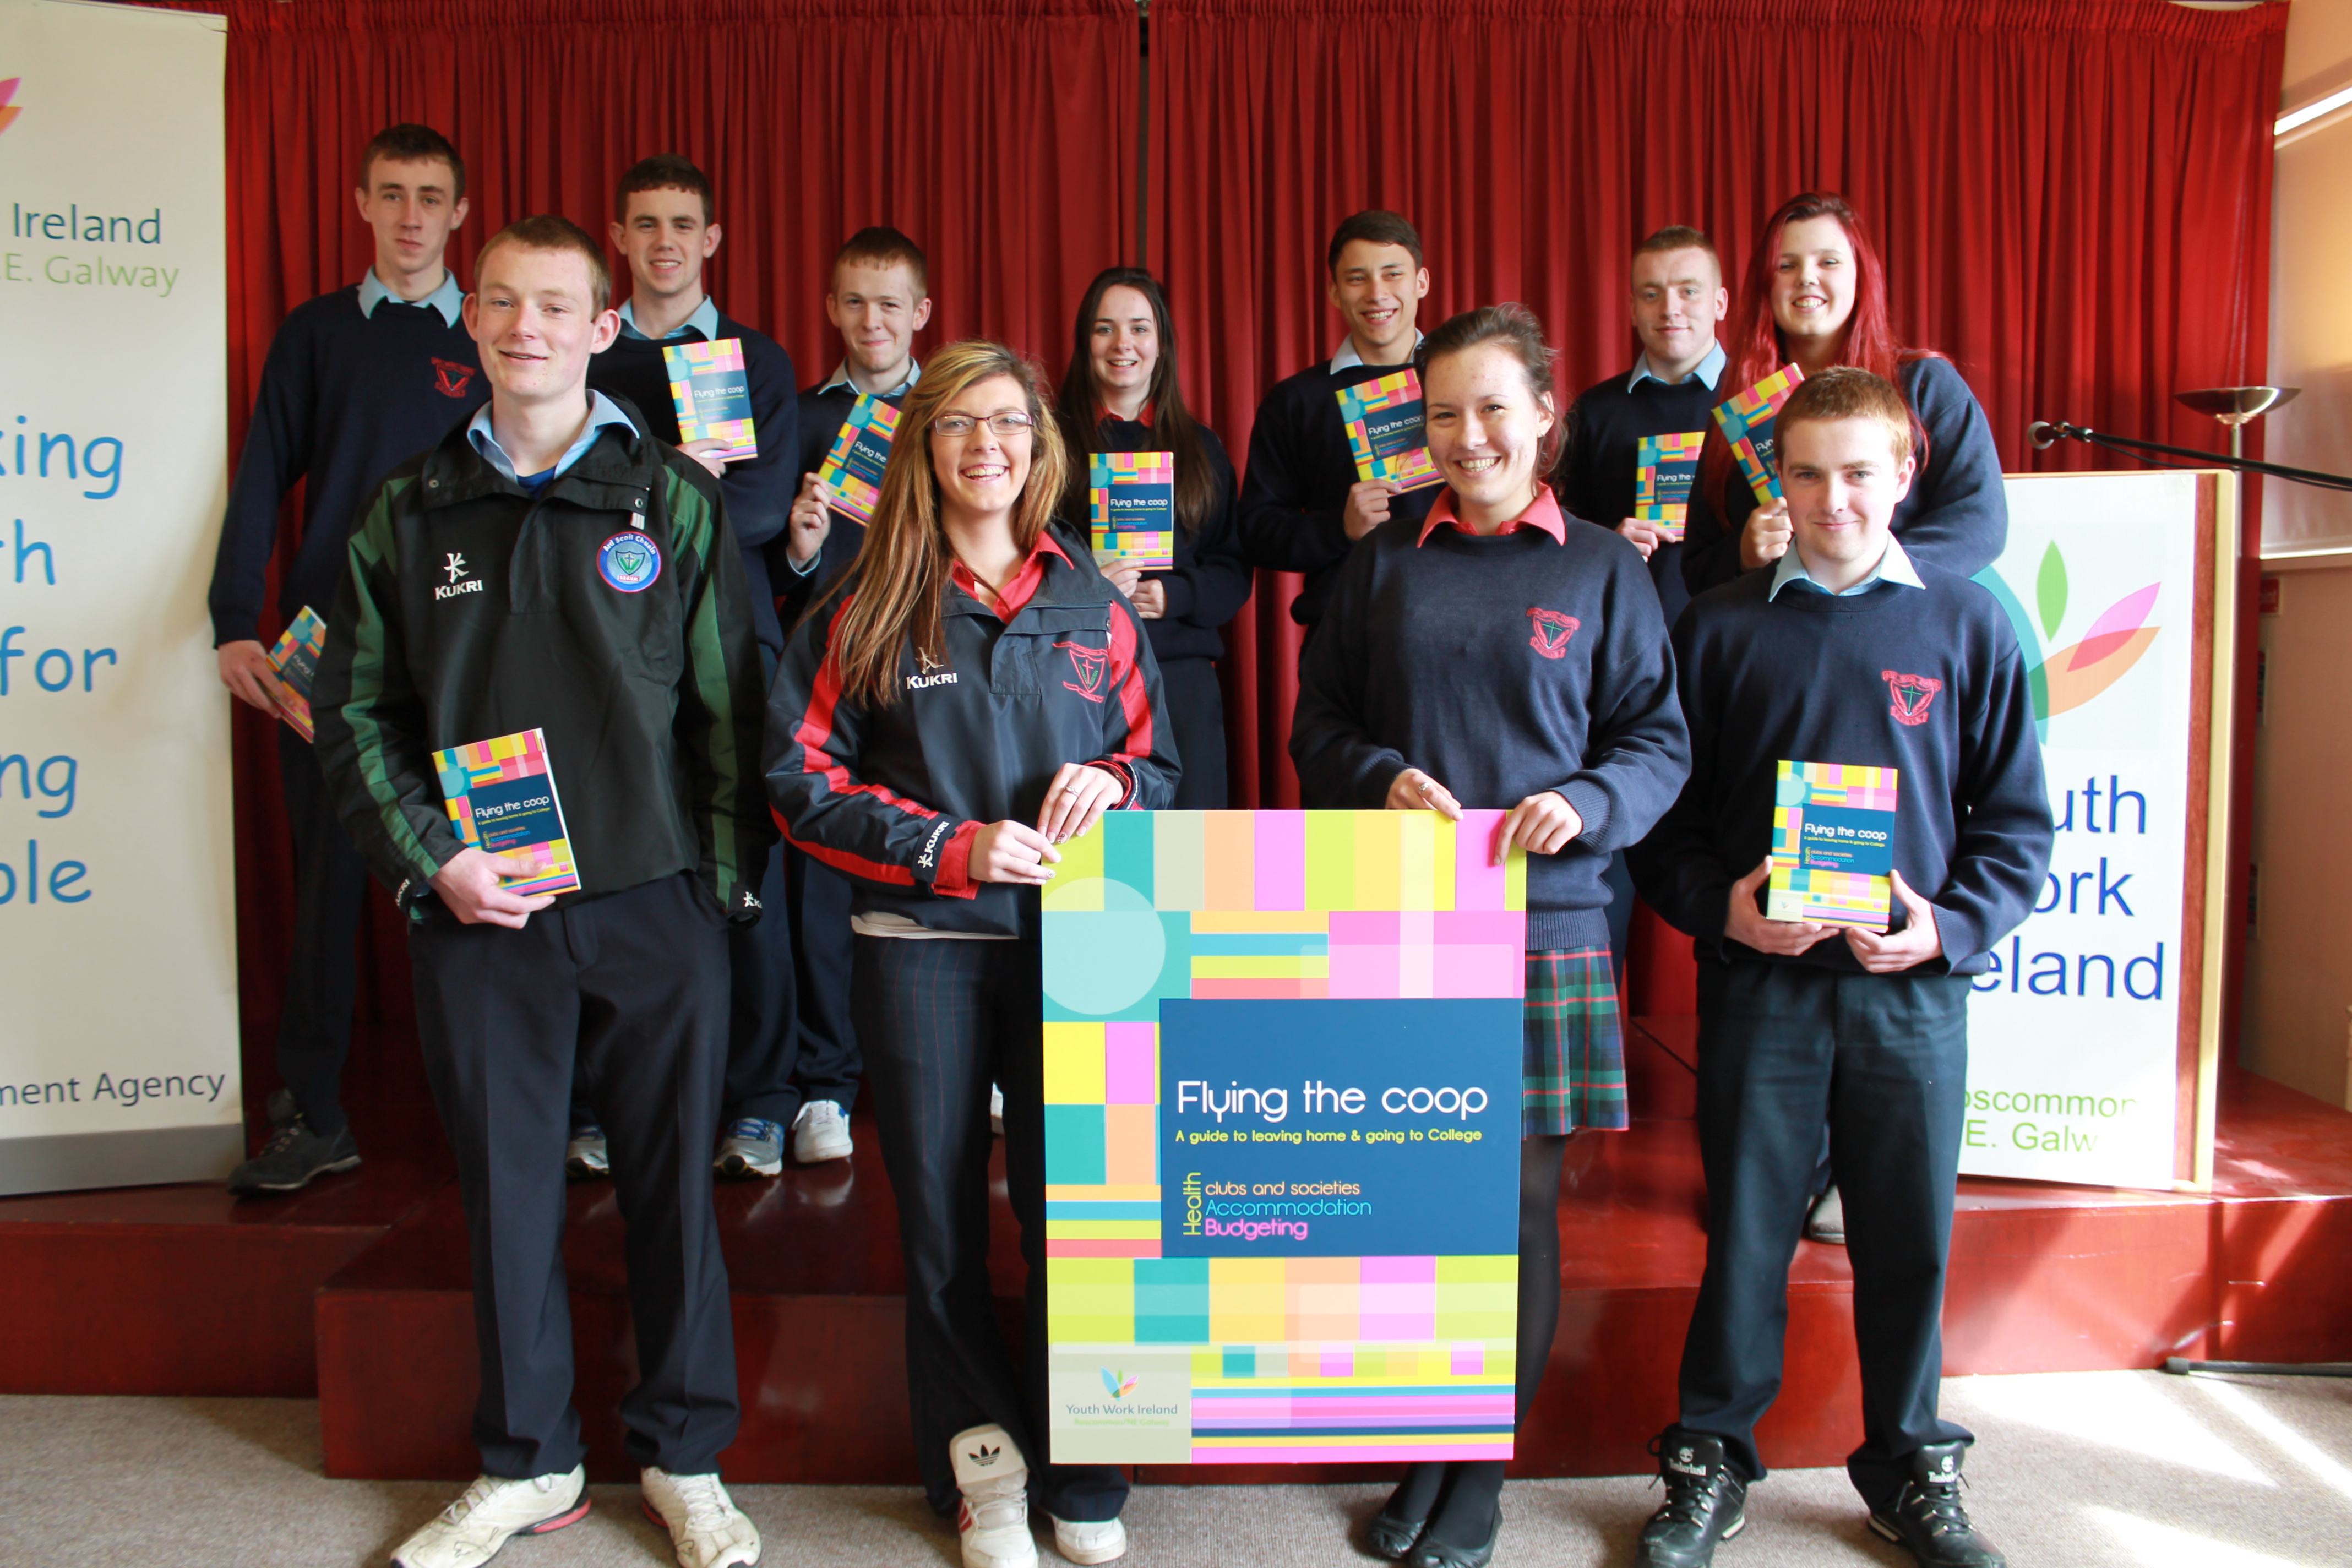 Leaving Cert students from St Cuan's College with Flying the Coop flyer